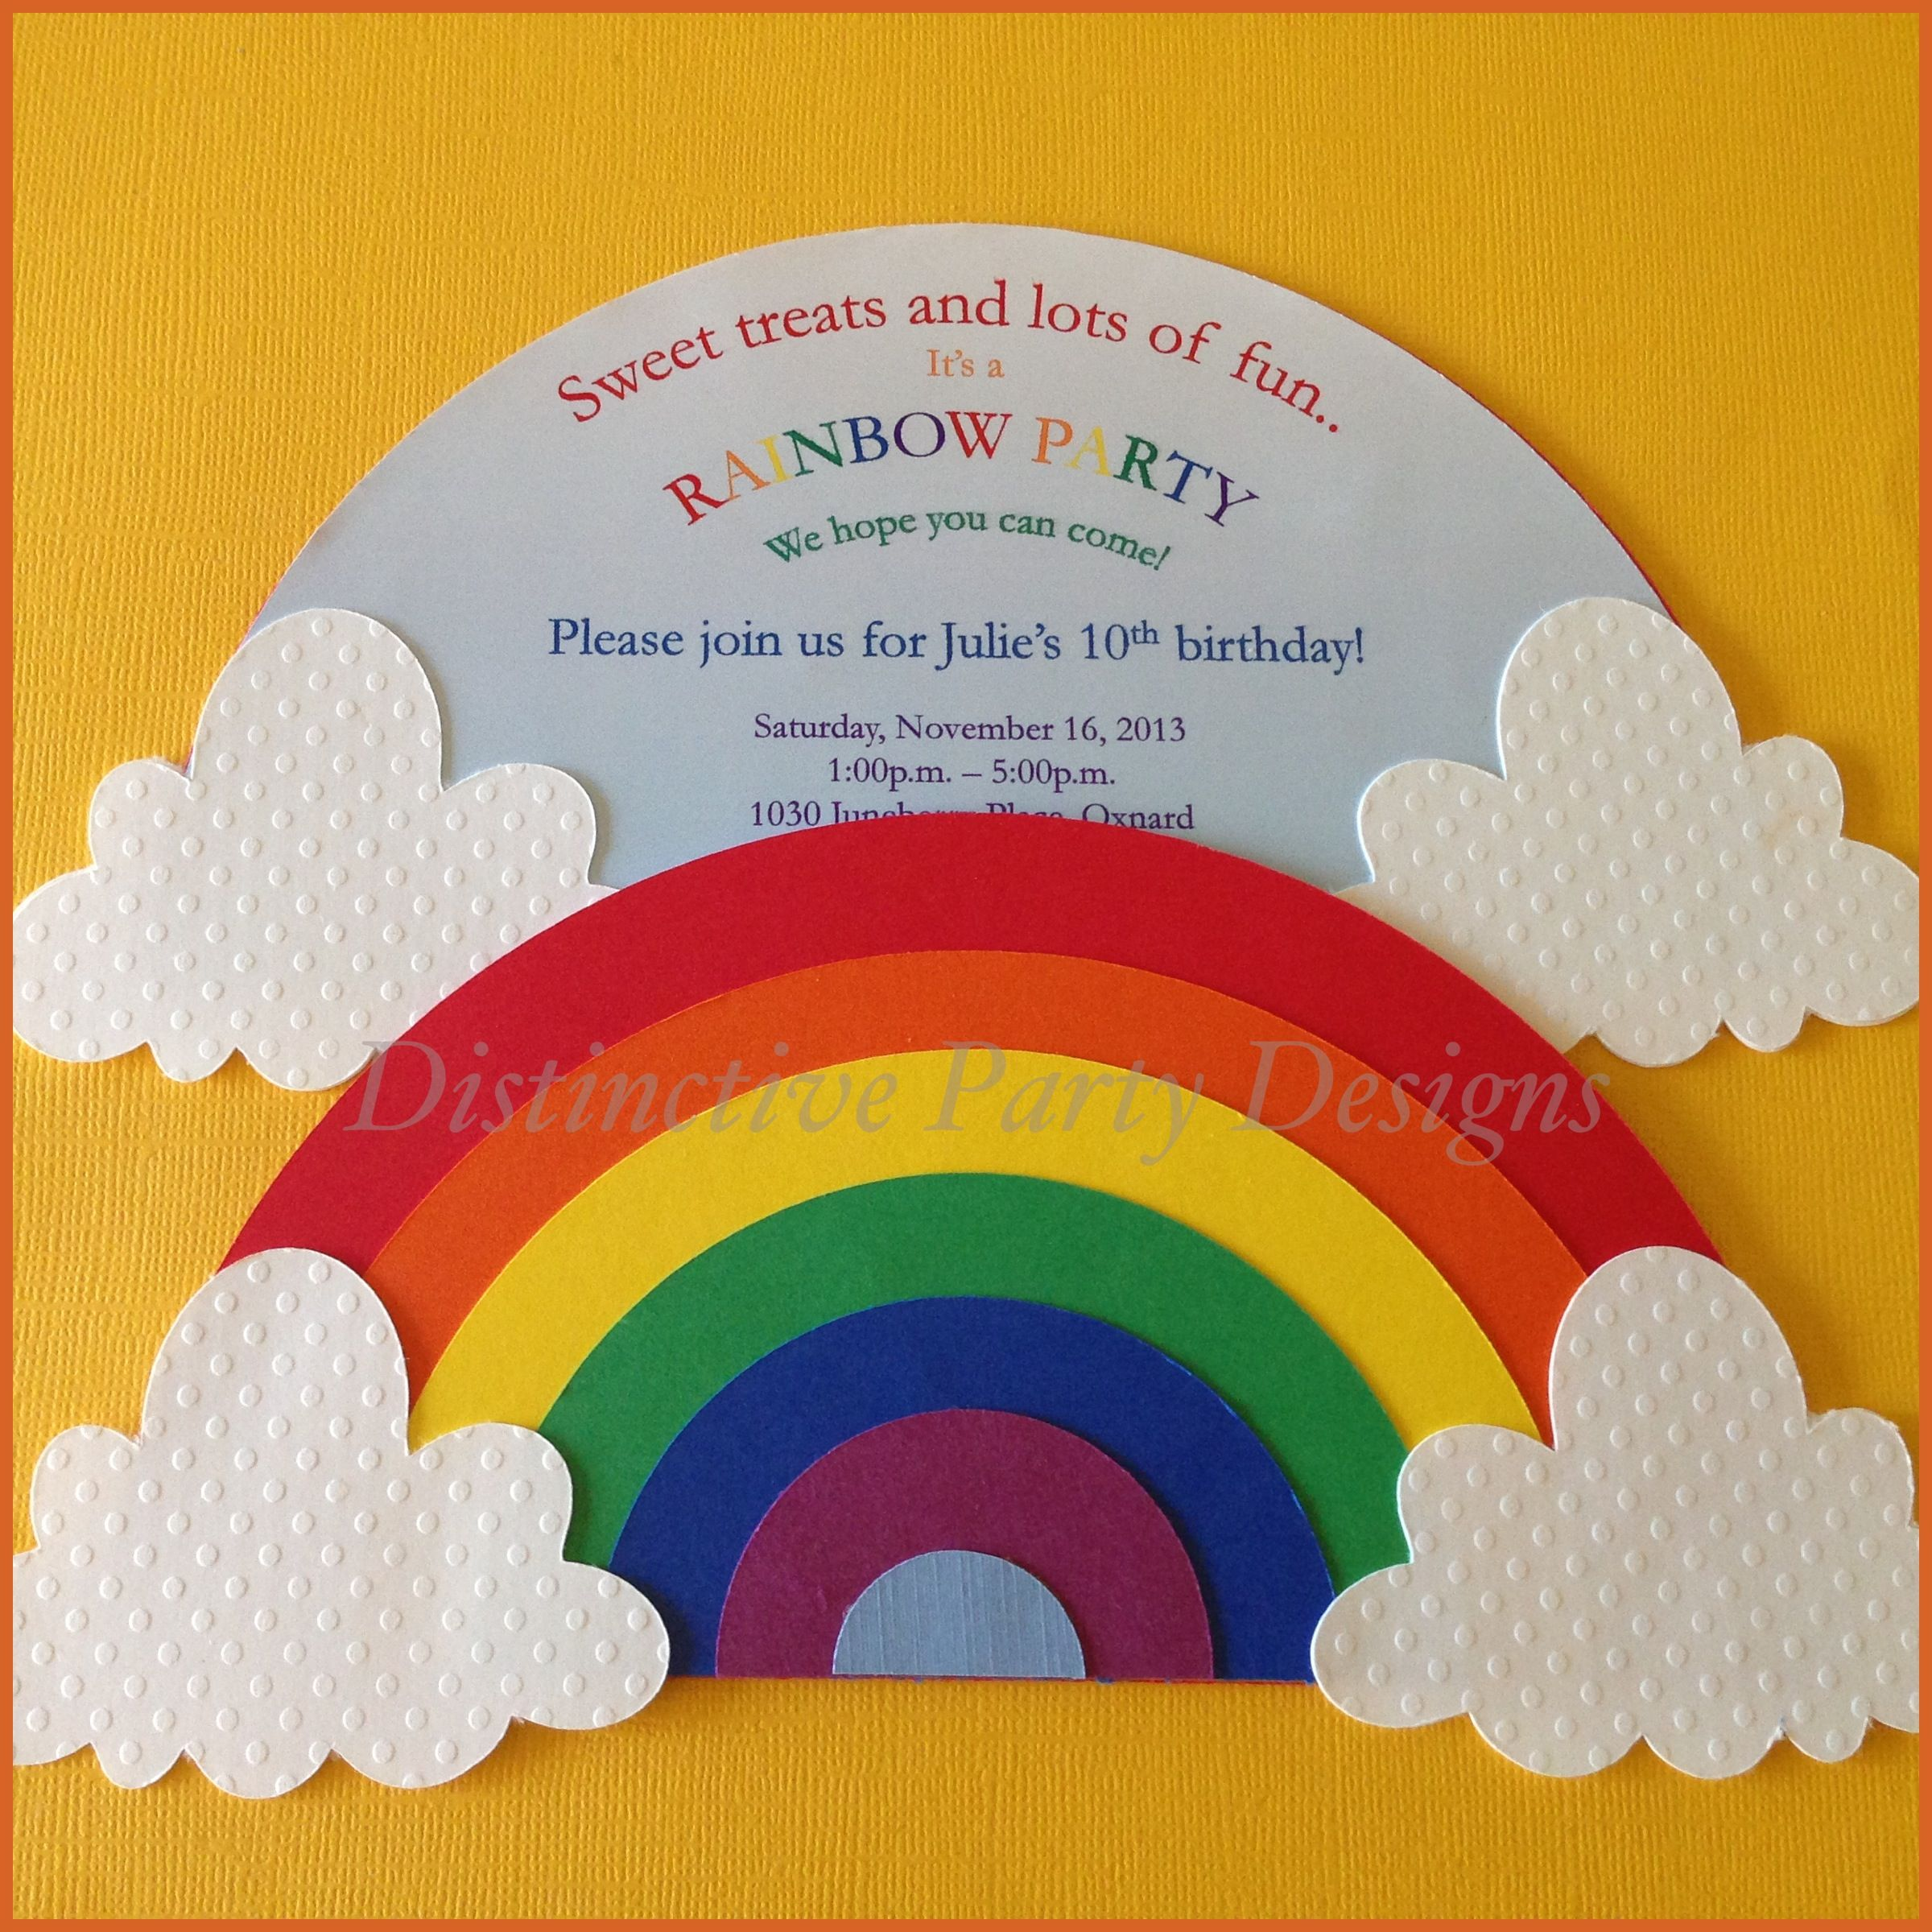 Party Invitations For A Rainbow Themed Birthday Designed And